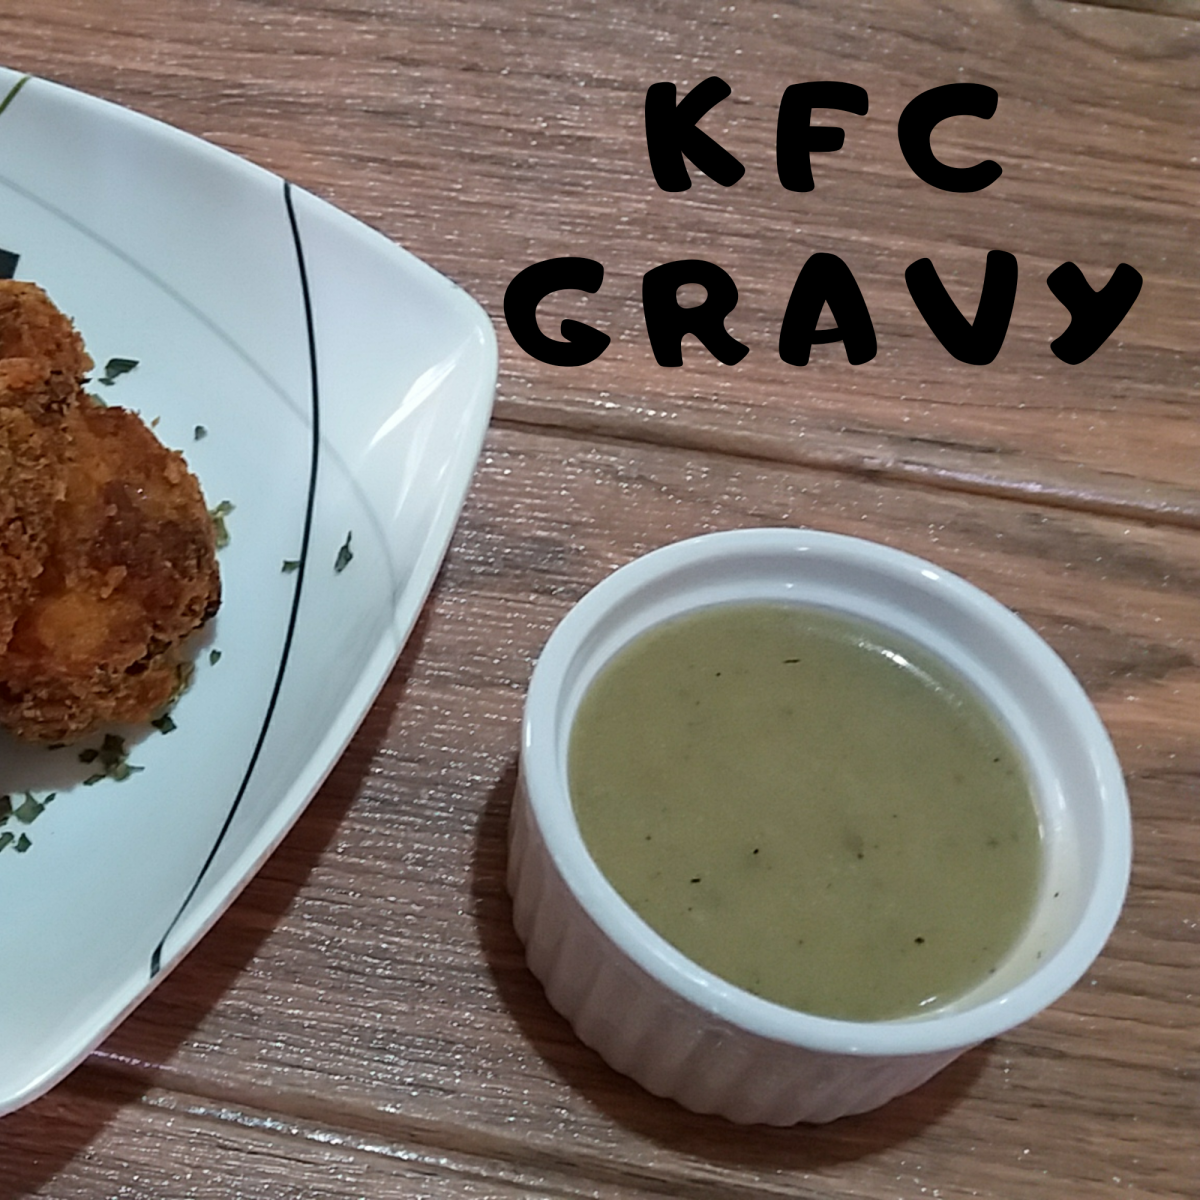 How to Make KFC Gravy